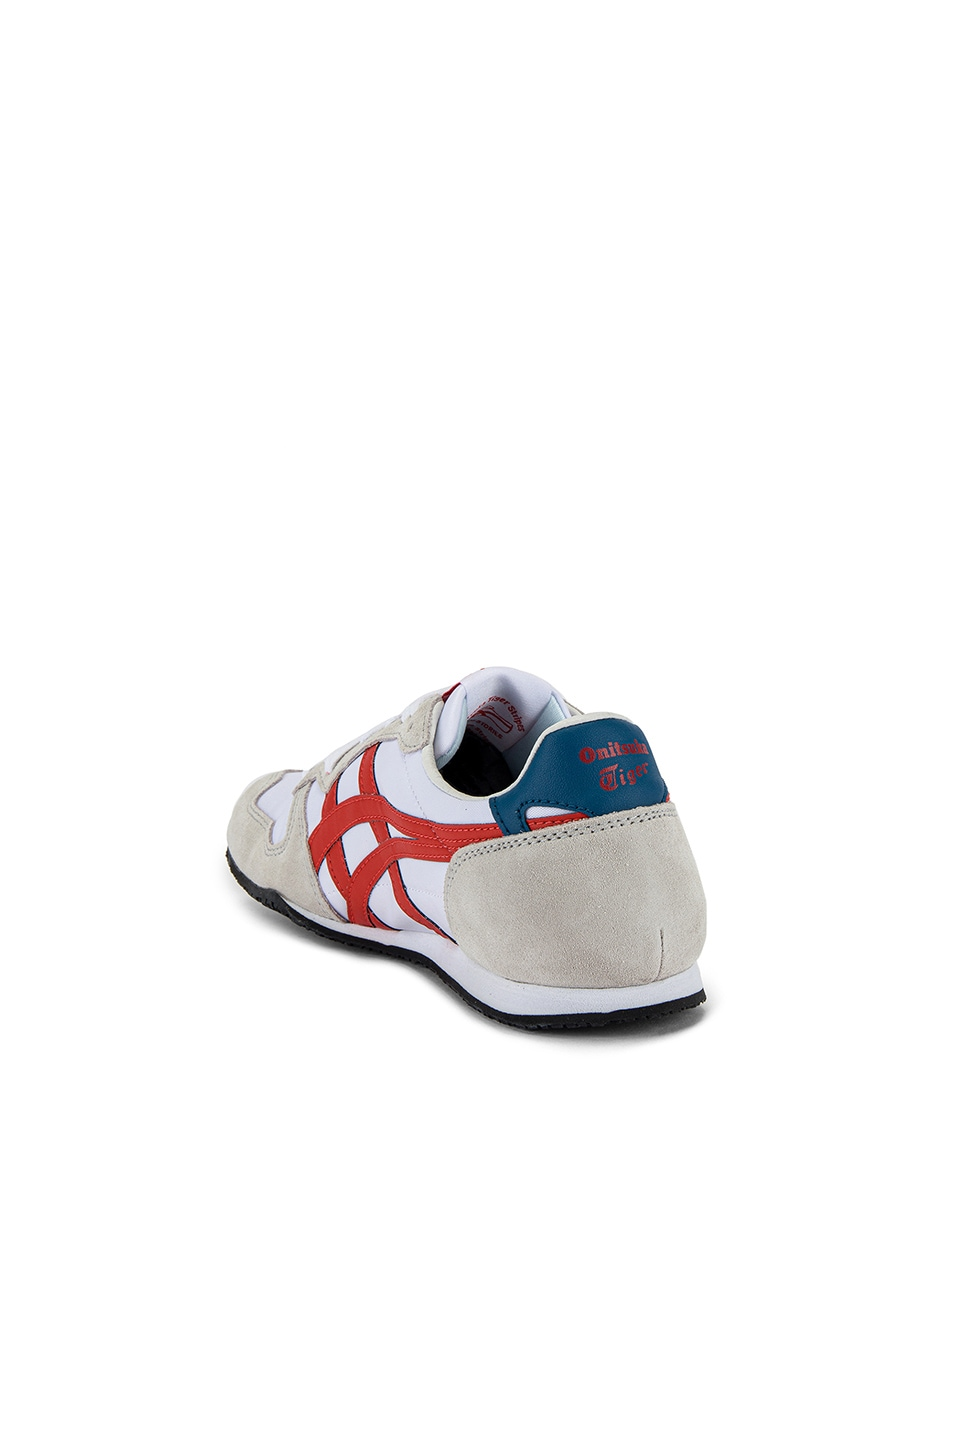 Image 3 of Onitsuka Tiger Serrano in White & Fire Opal